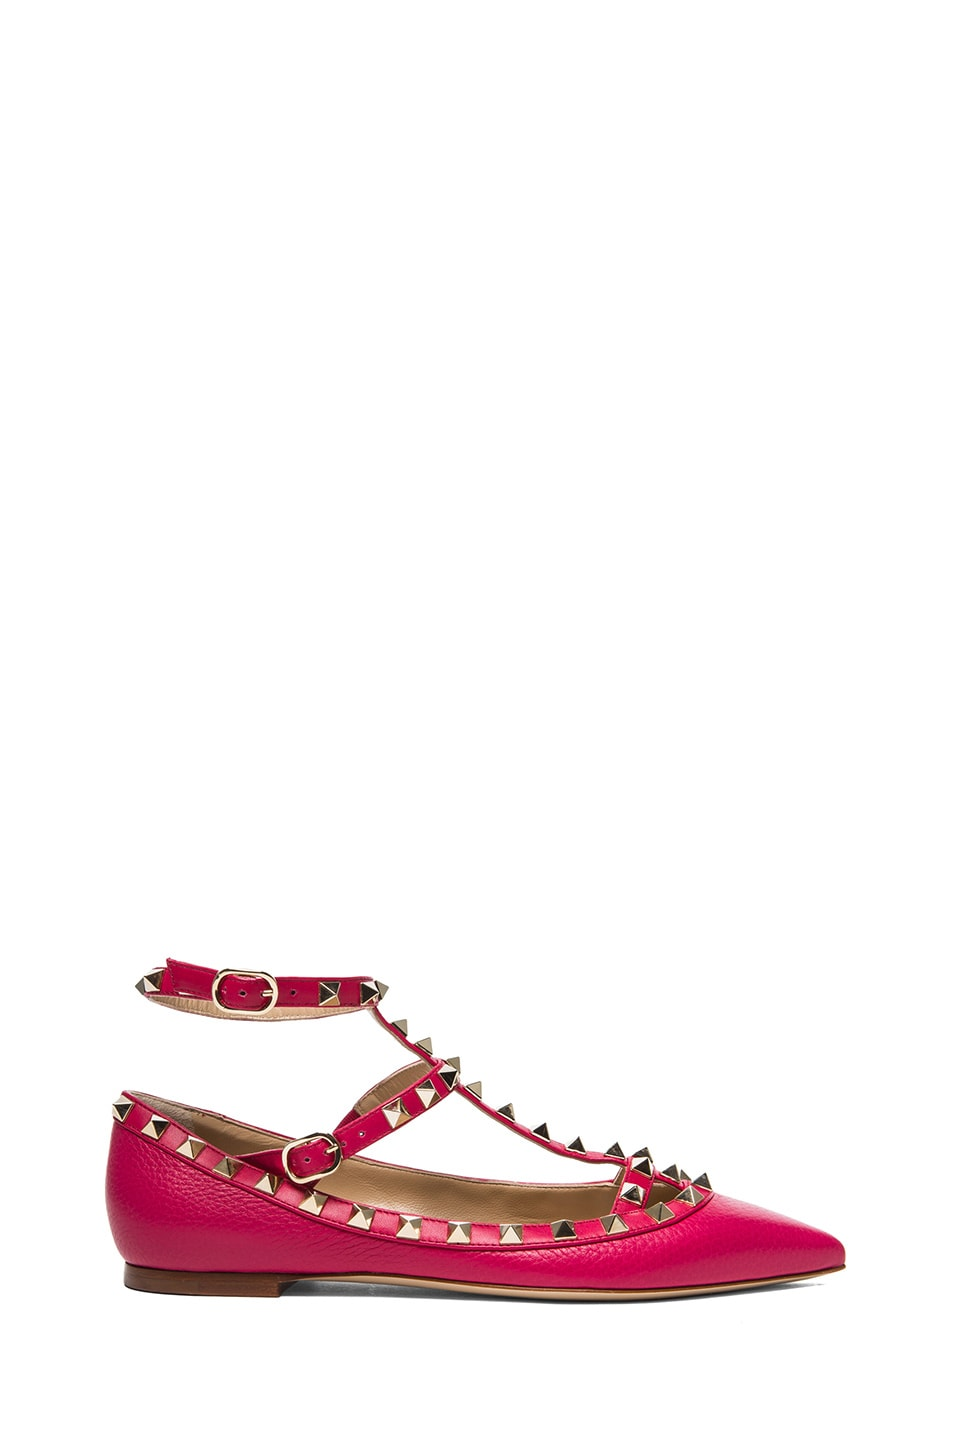 Image 1 of Valentino Rockstud Leather Cage Flats in Cyclamin